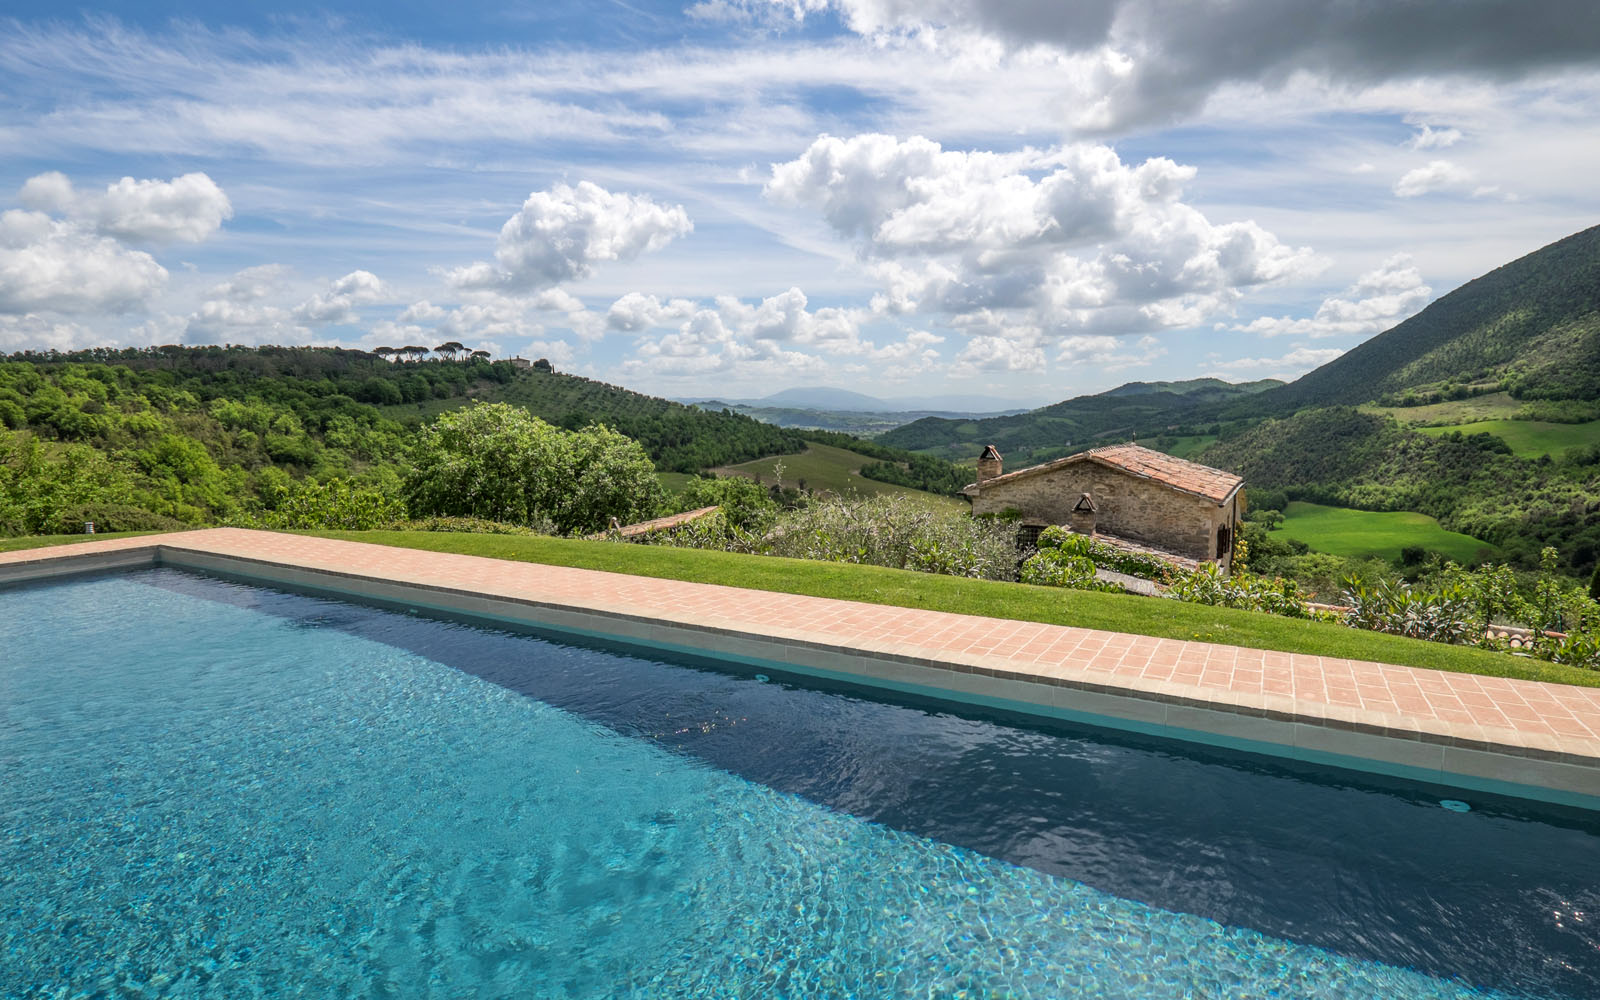 Holiday Rental in Umbria